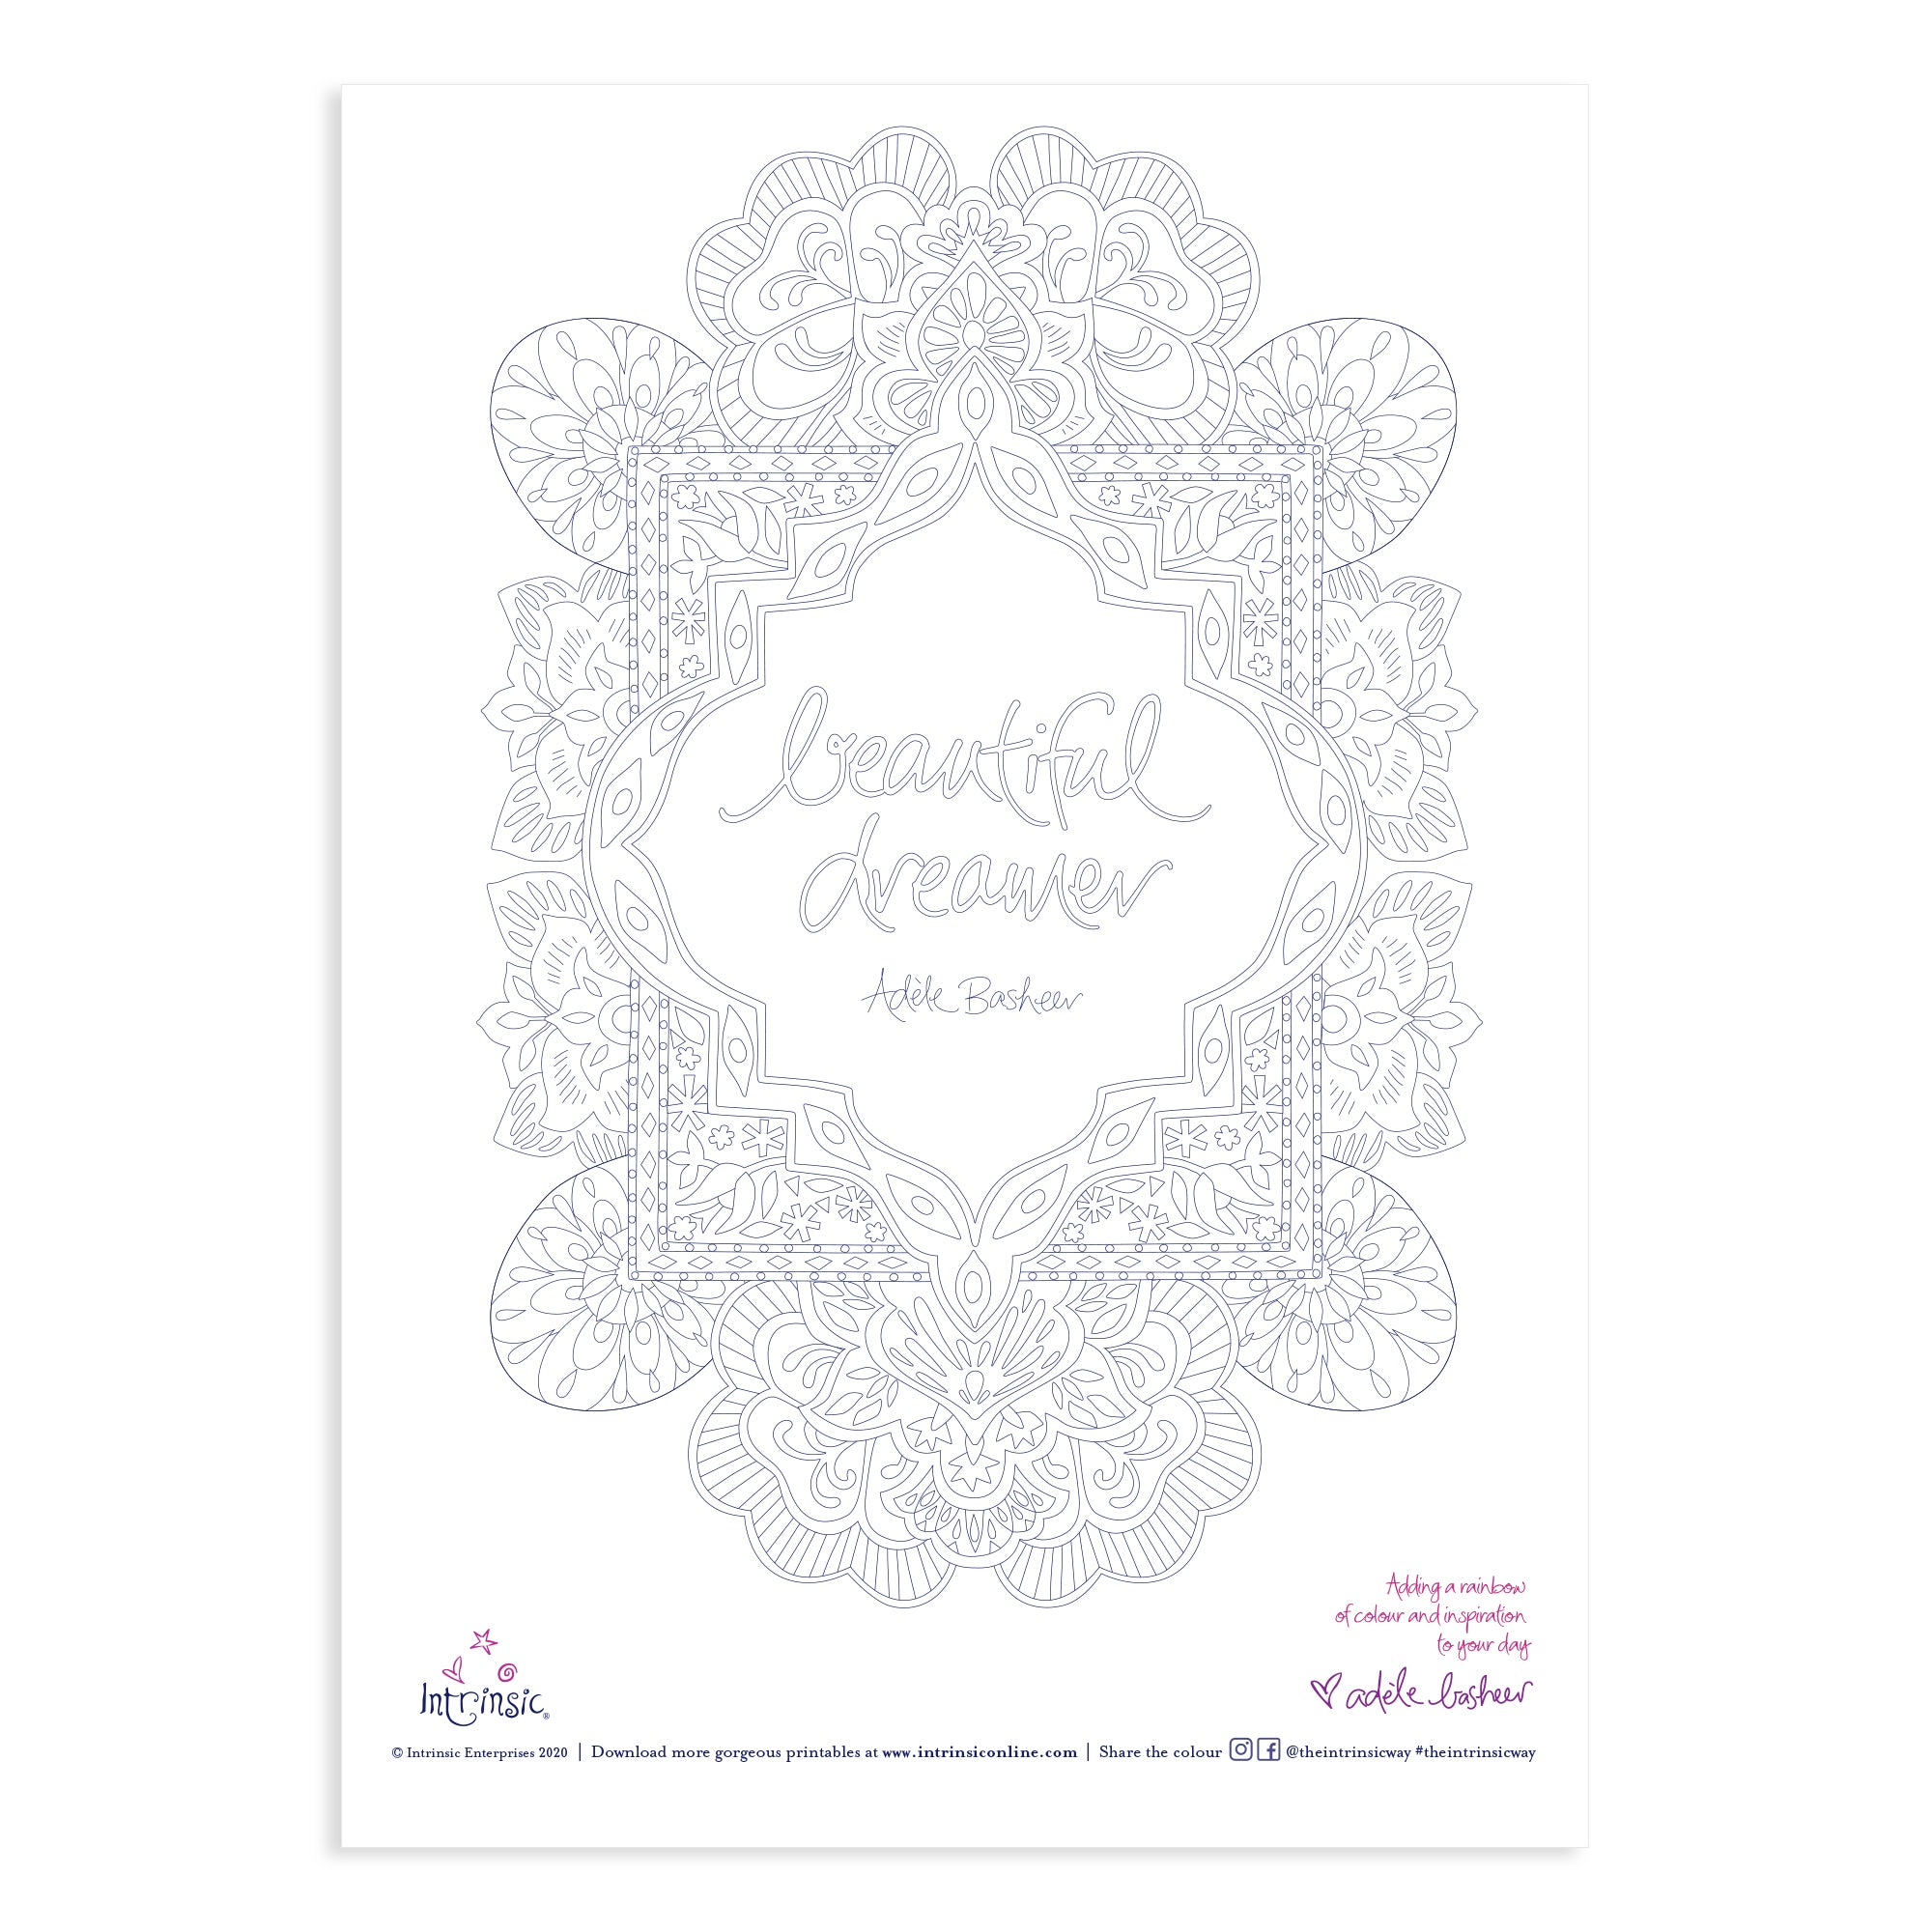 Intrinsic Beautiful Dreamer Colouring In Printable #16